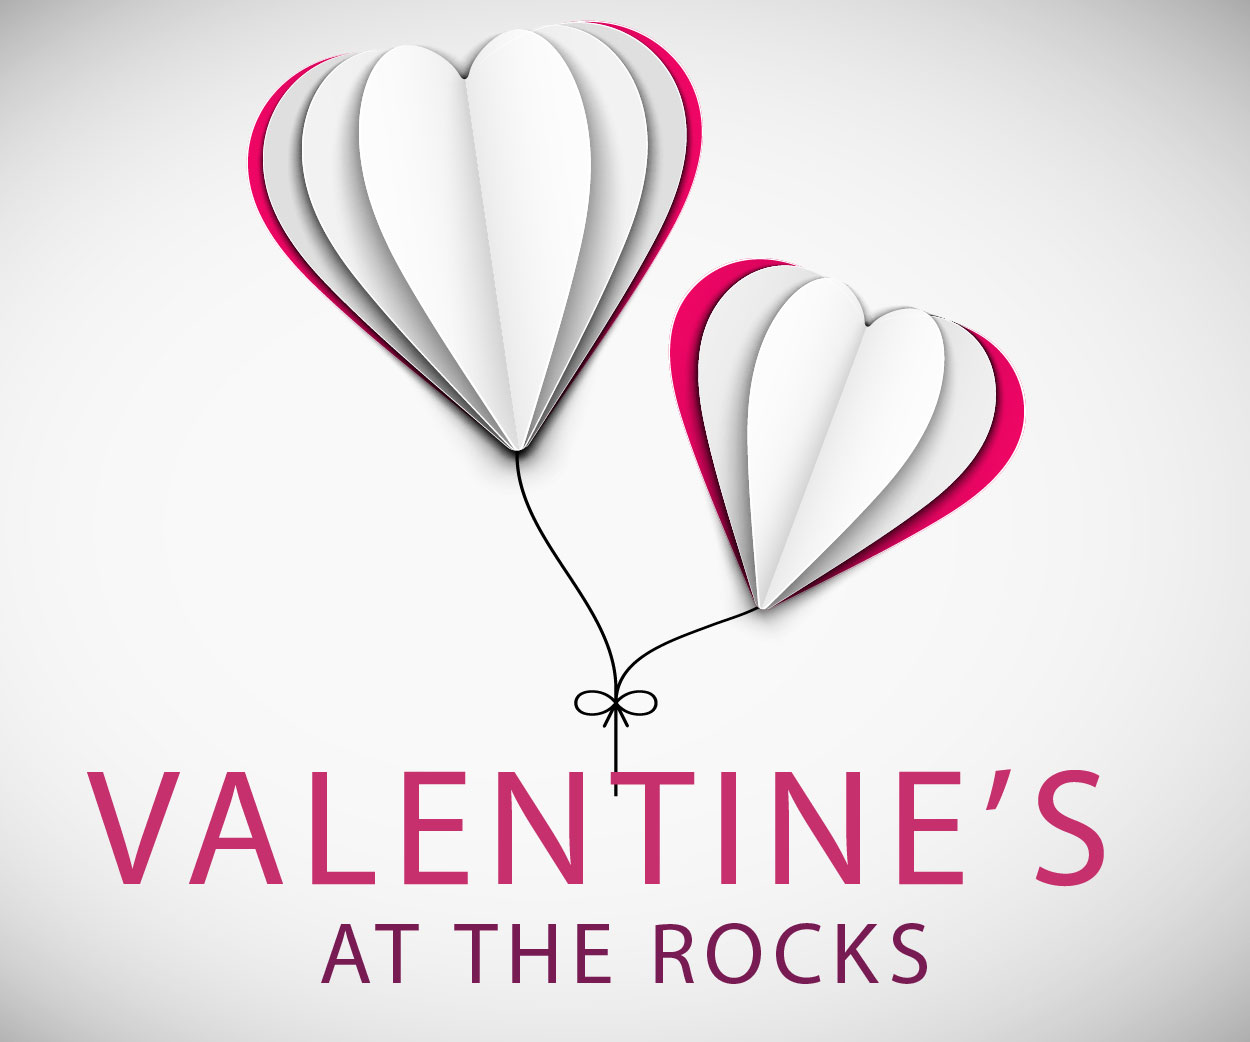 Valentines Day at The Rocks